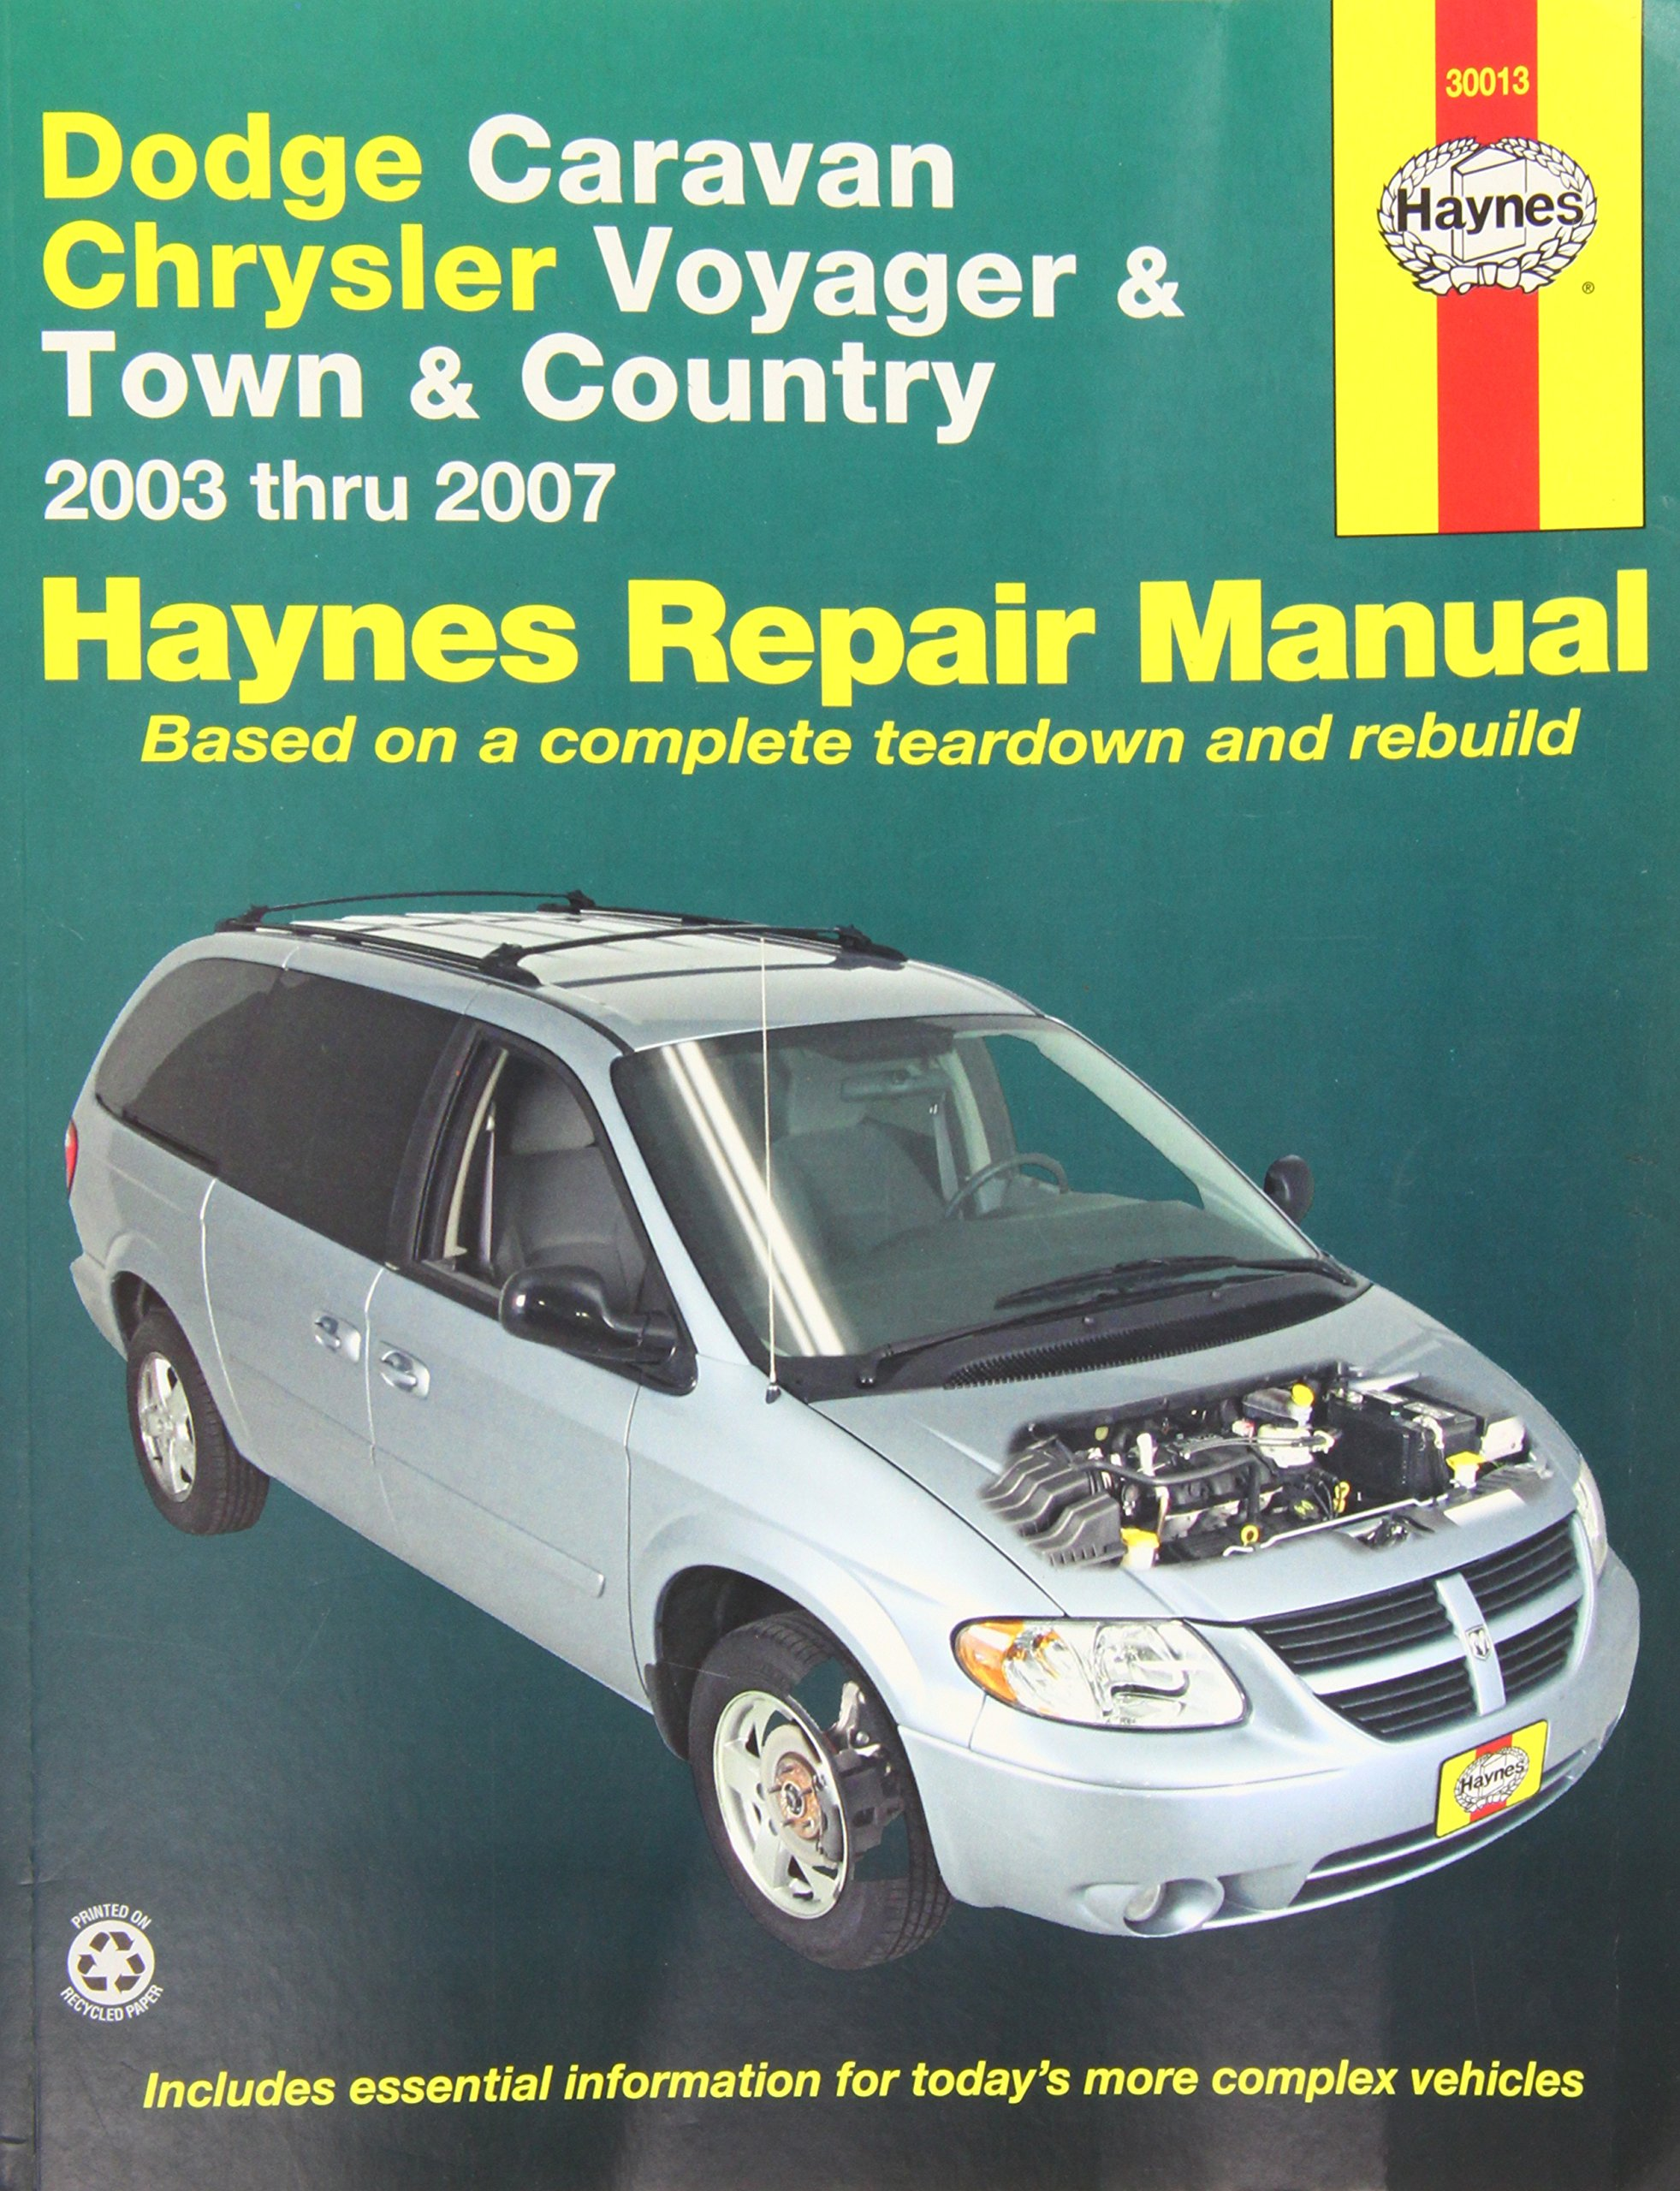 amazon com haynes 30013 repair manual 0038345300134 books rh amazon com 2003 Dodge Caravan Parts Diagram 2006 dodge caravan repair manual pdf